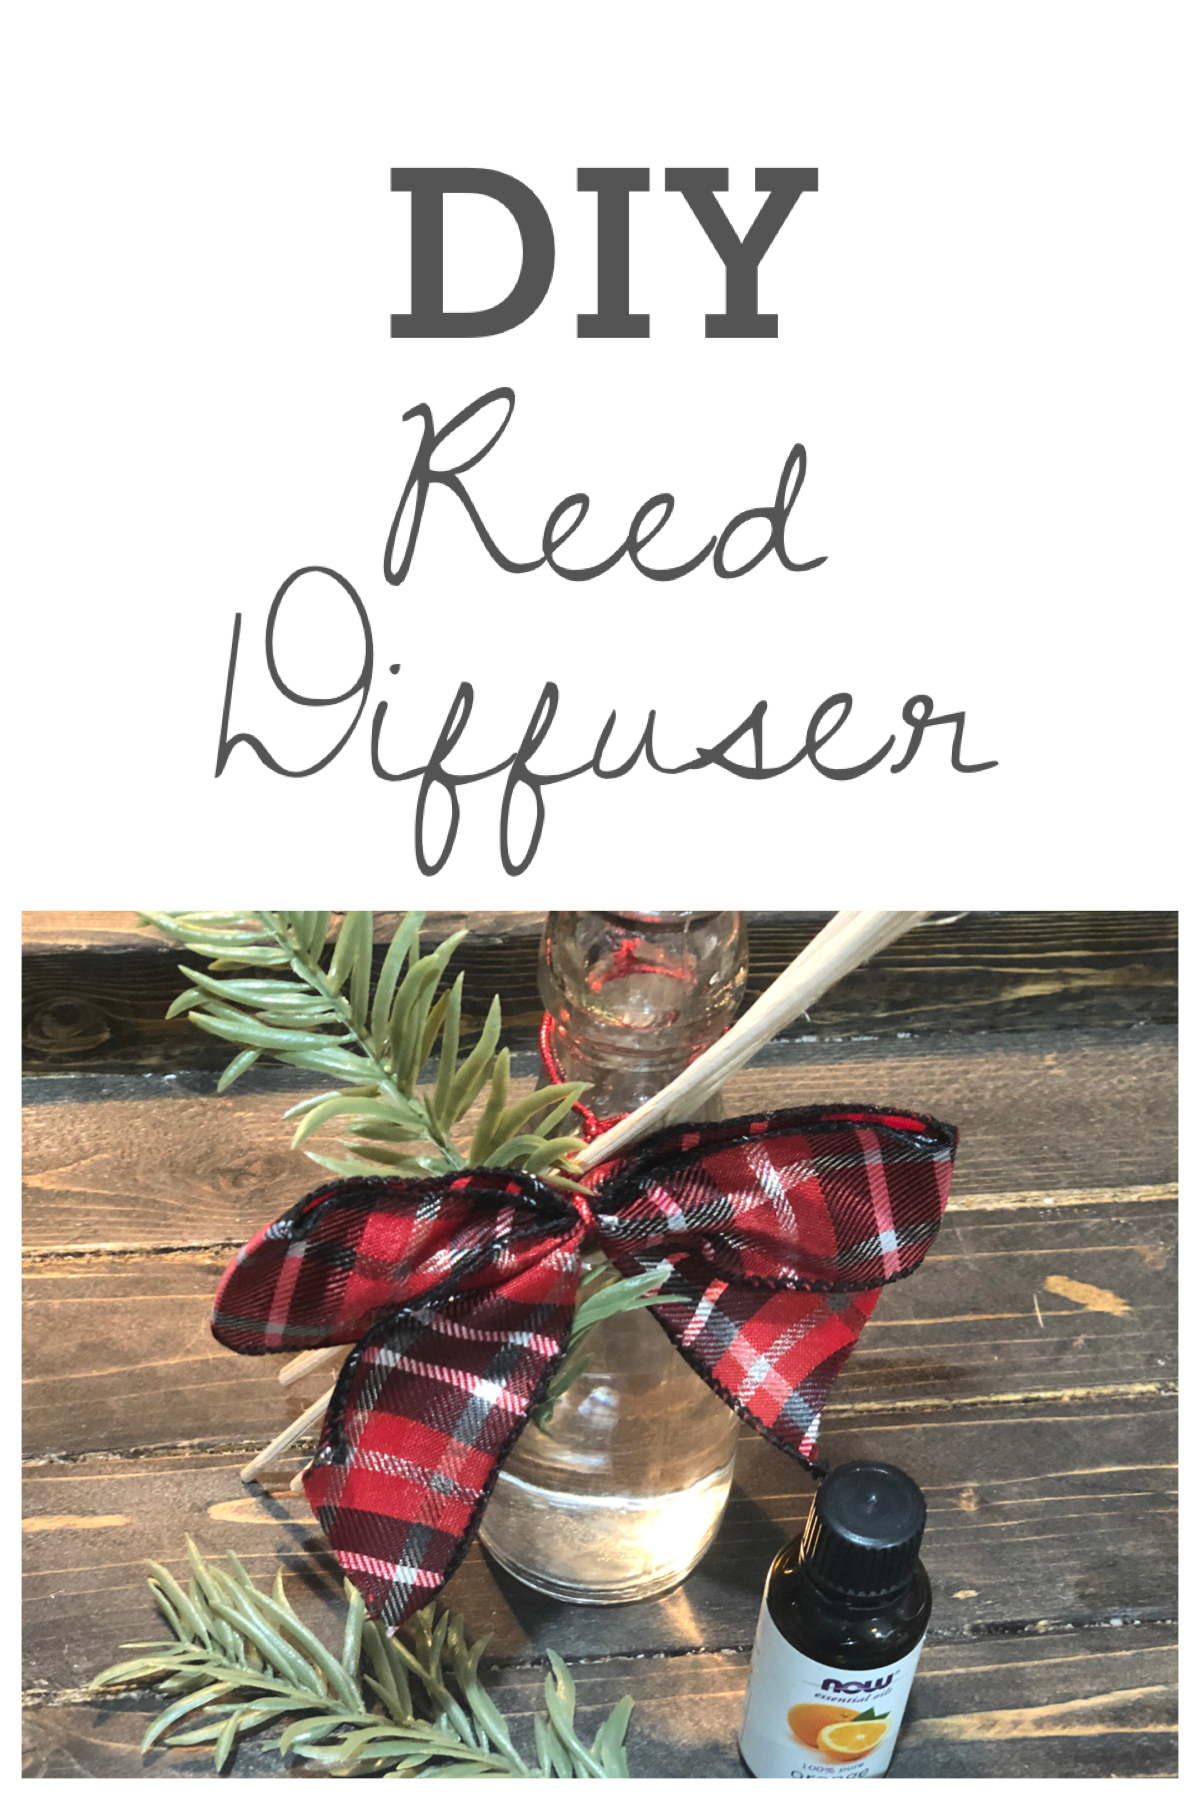 DIY Reed Diffuser, Hey guys I'm back with another cheap and easy Christmas gift idea and that can be made in a fews minutes with a few dollars! Frugallyfantastic.com